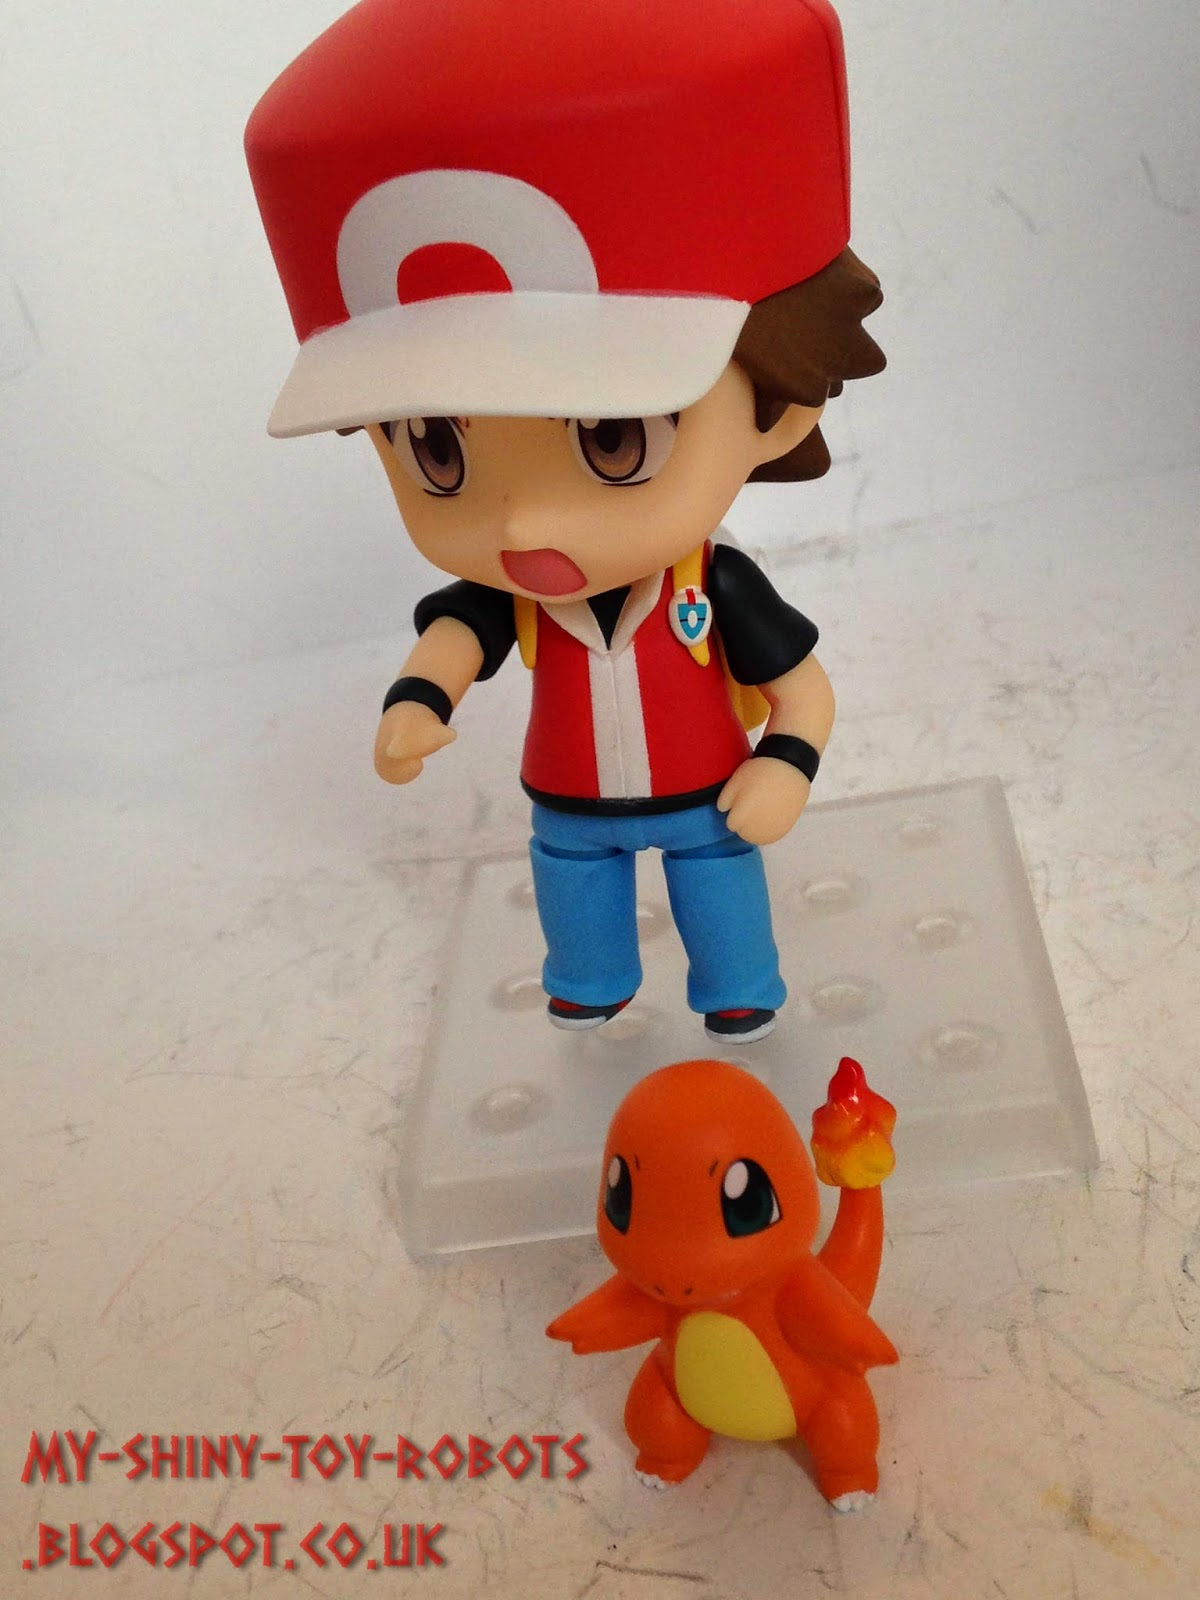 Sending Charmander into battle